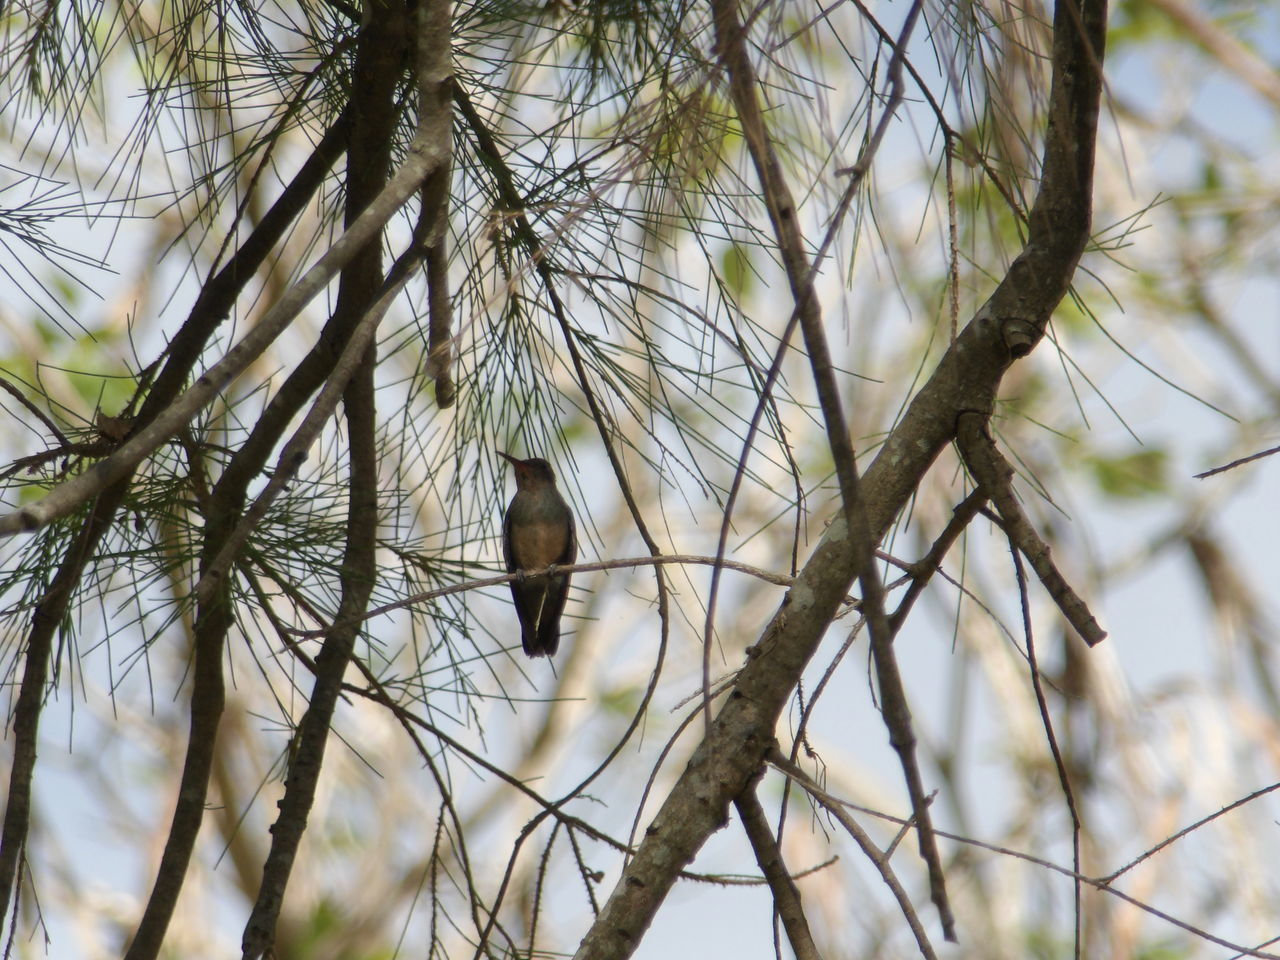 animal themes, one animal, tree, animals in the wild, branch, nature, no people, bird, animal wildlife, day, low angle view, outdoors, beauty in nature, mammal, perching, bird of prey